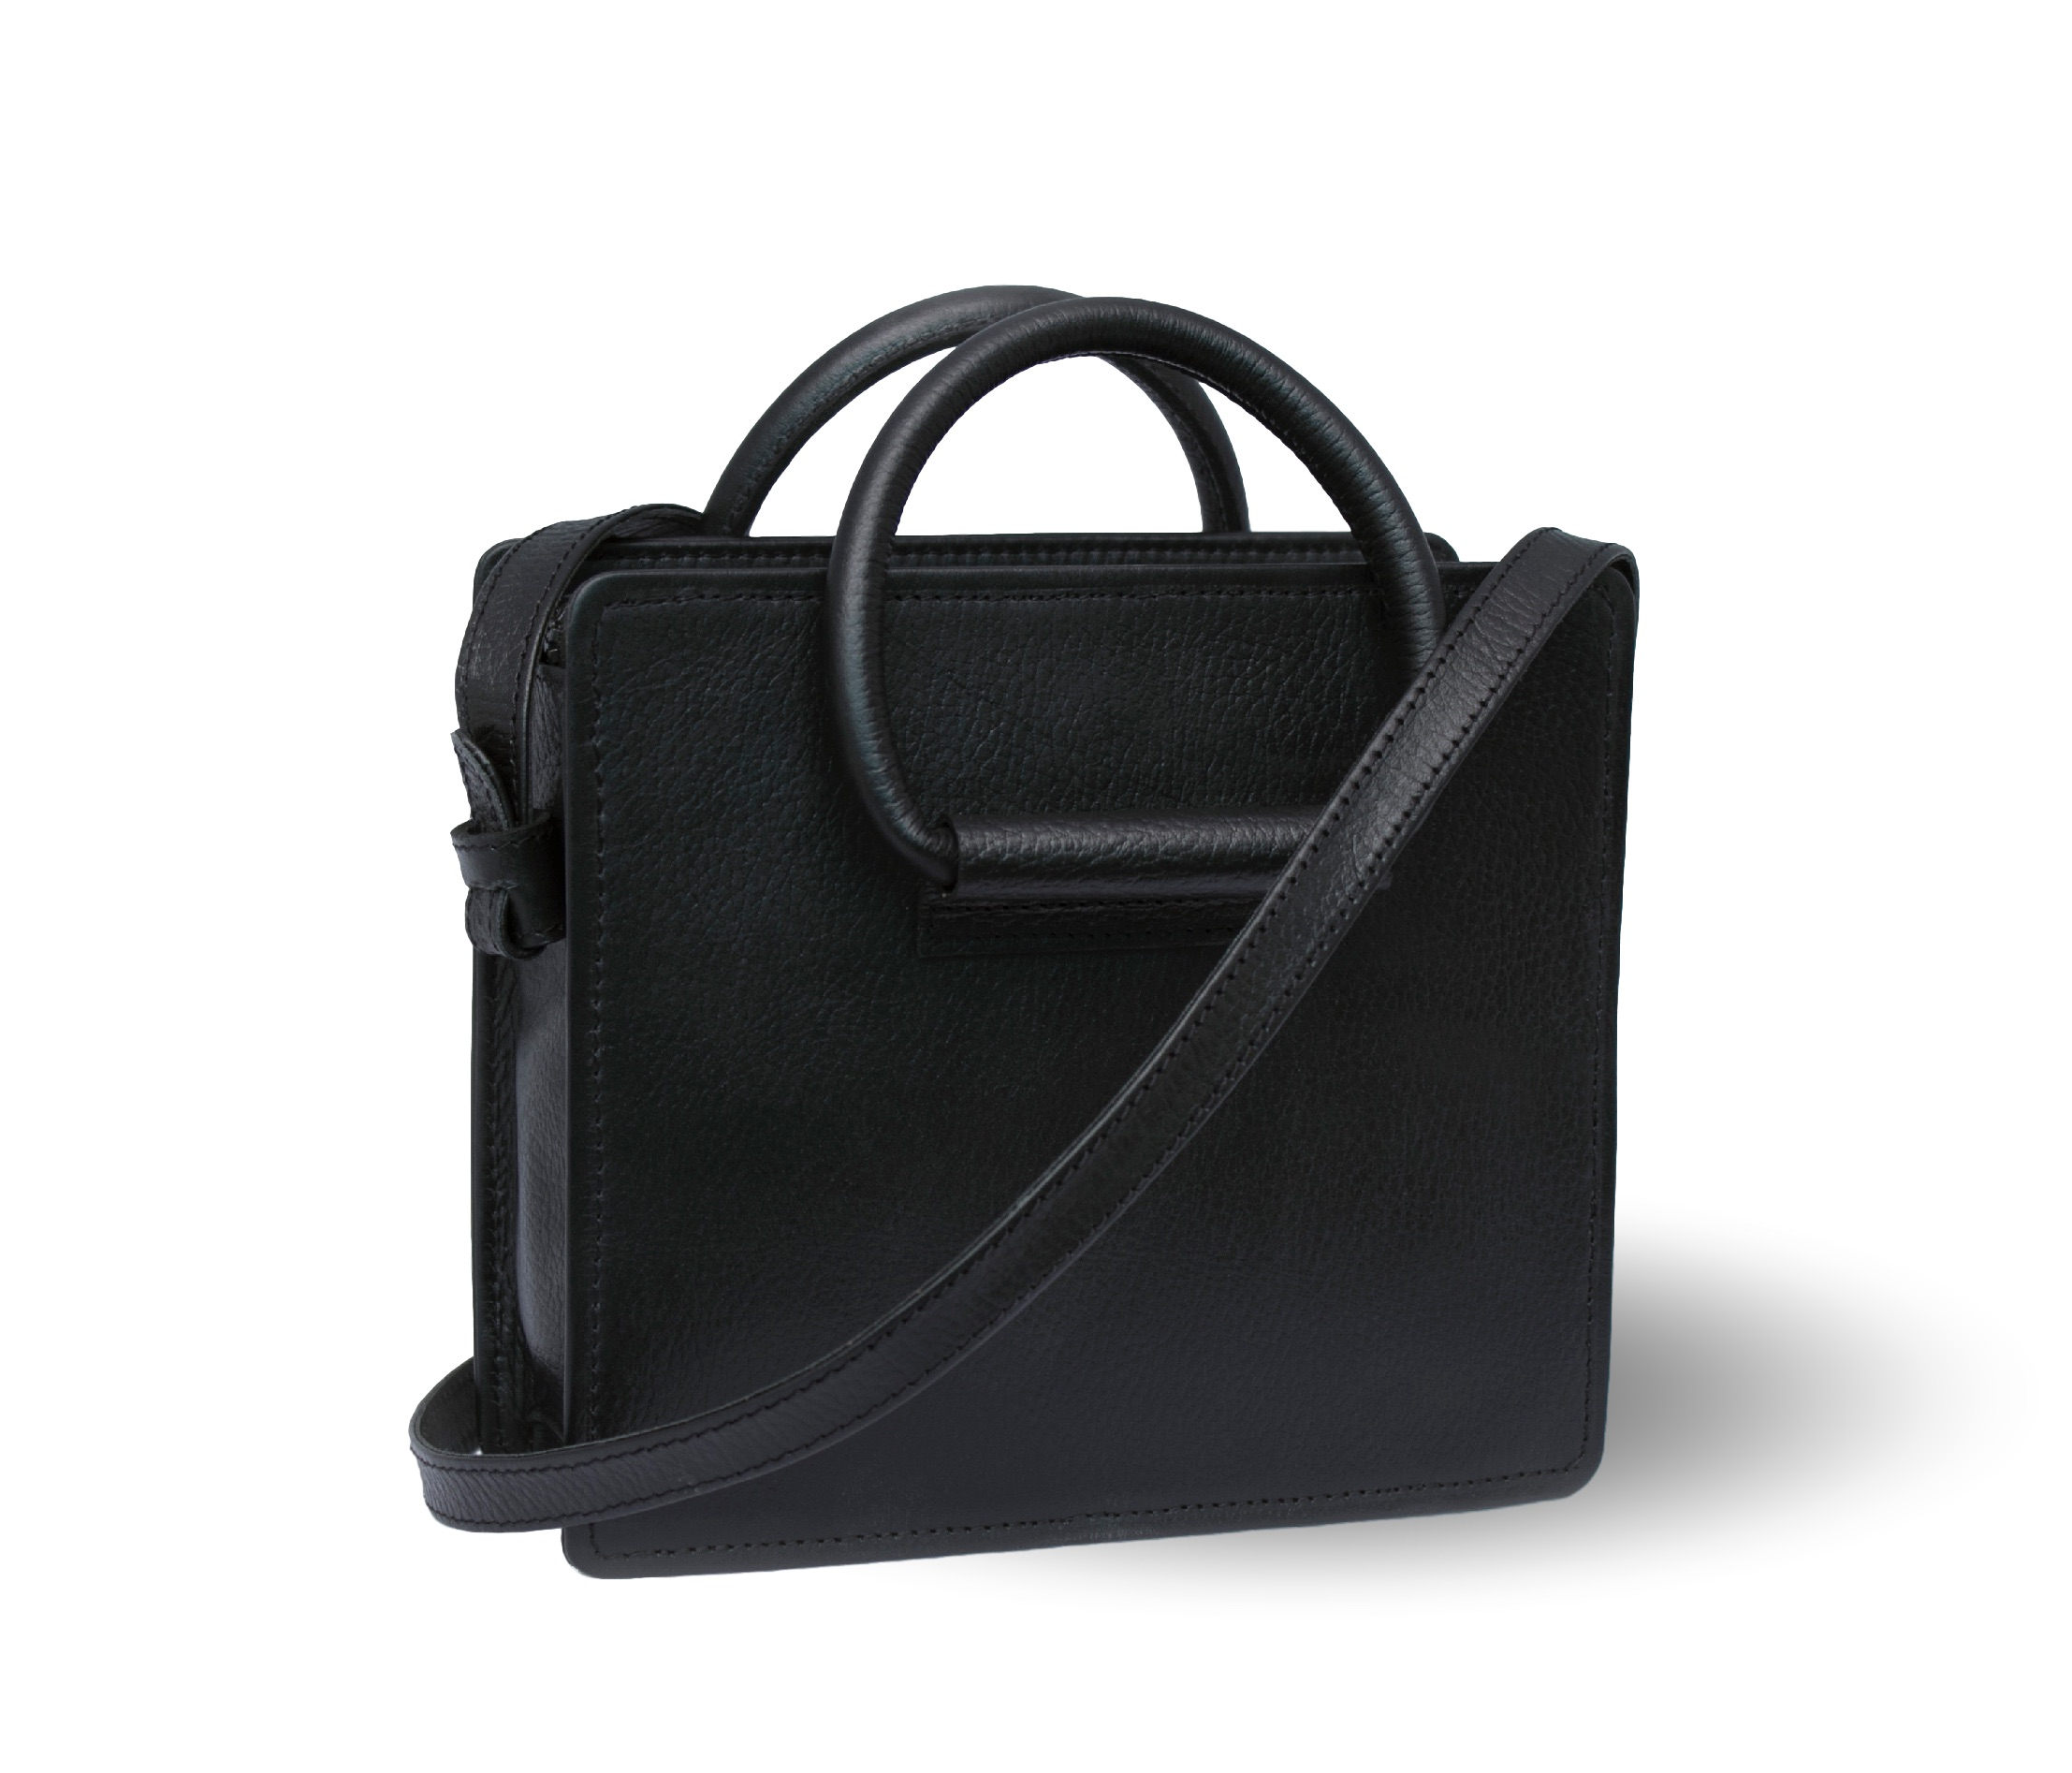 Celestino Black Handbag from FerWay Designs